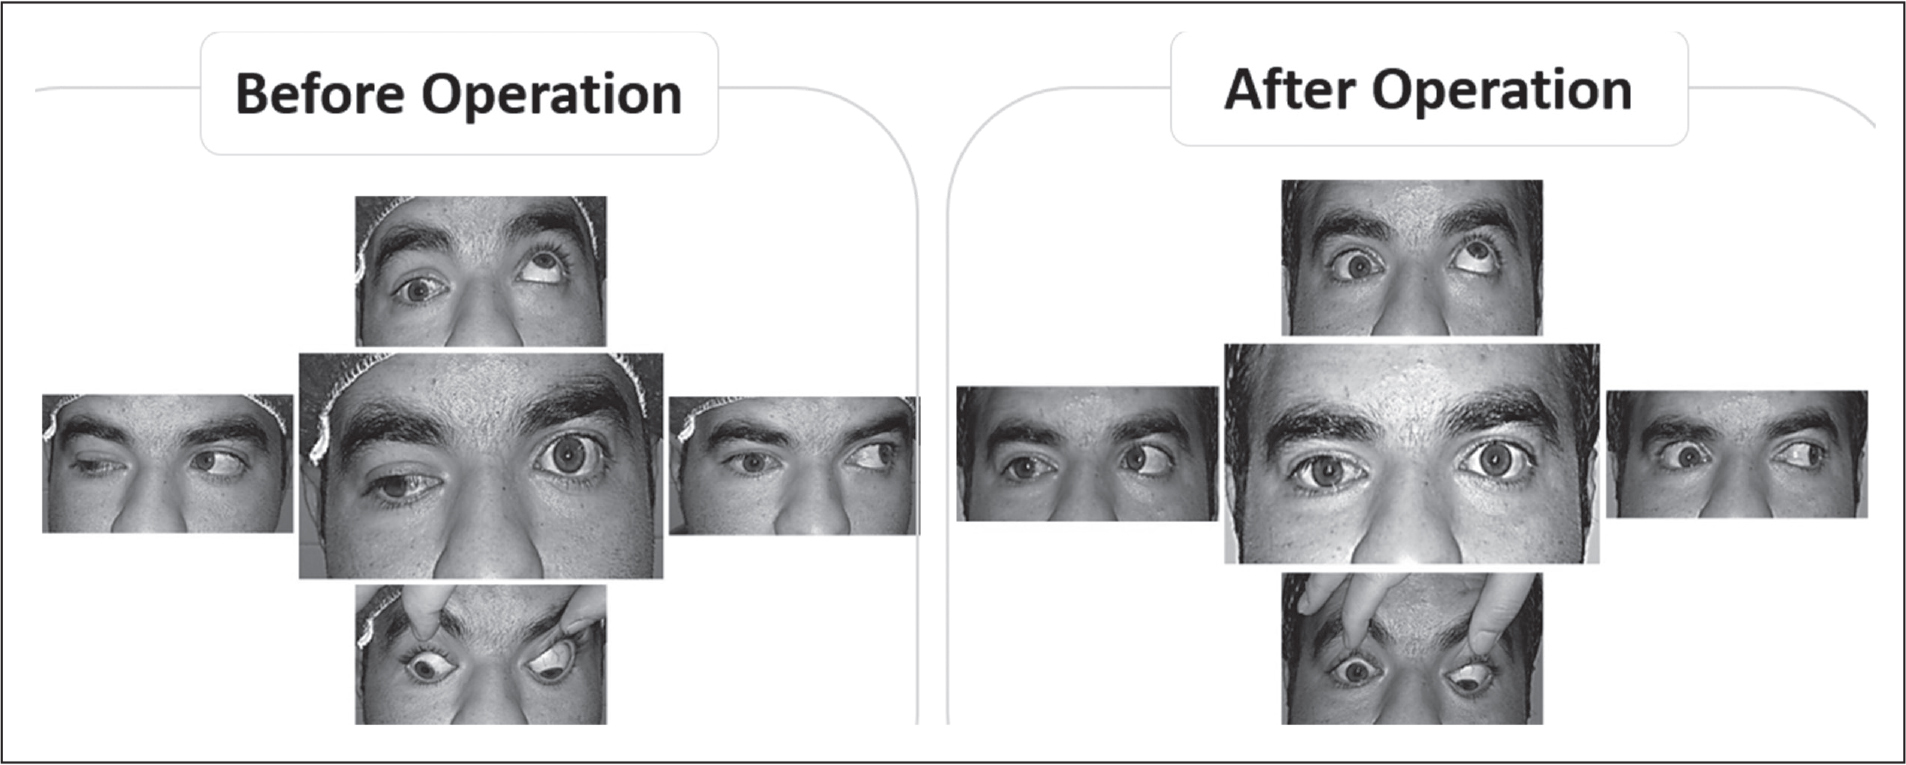 Ocular primary position and motility in patient 1 before and after surgery.